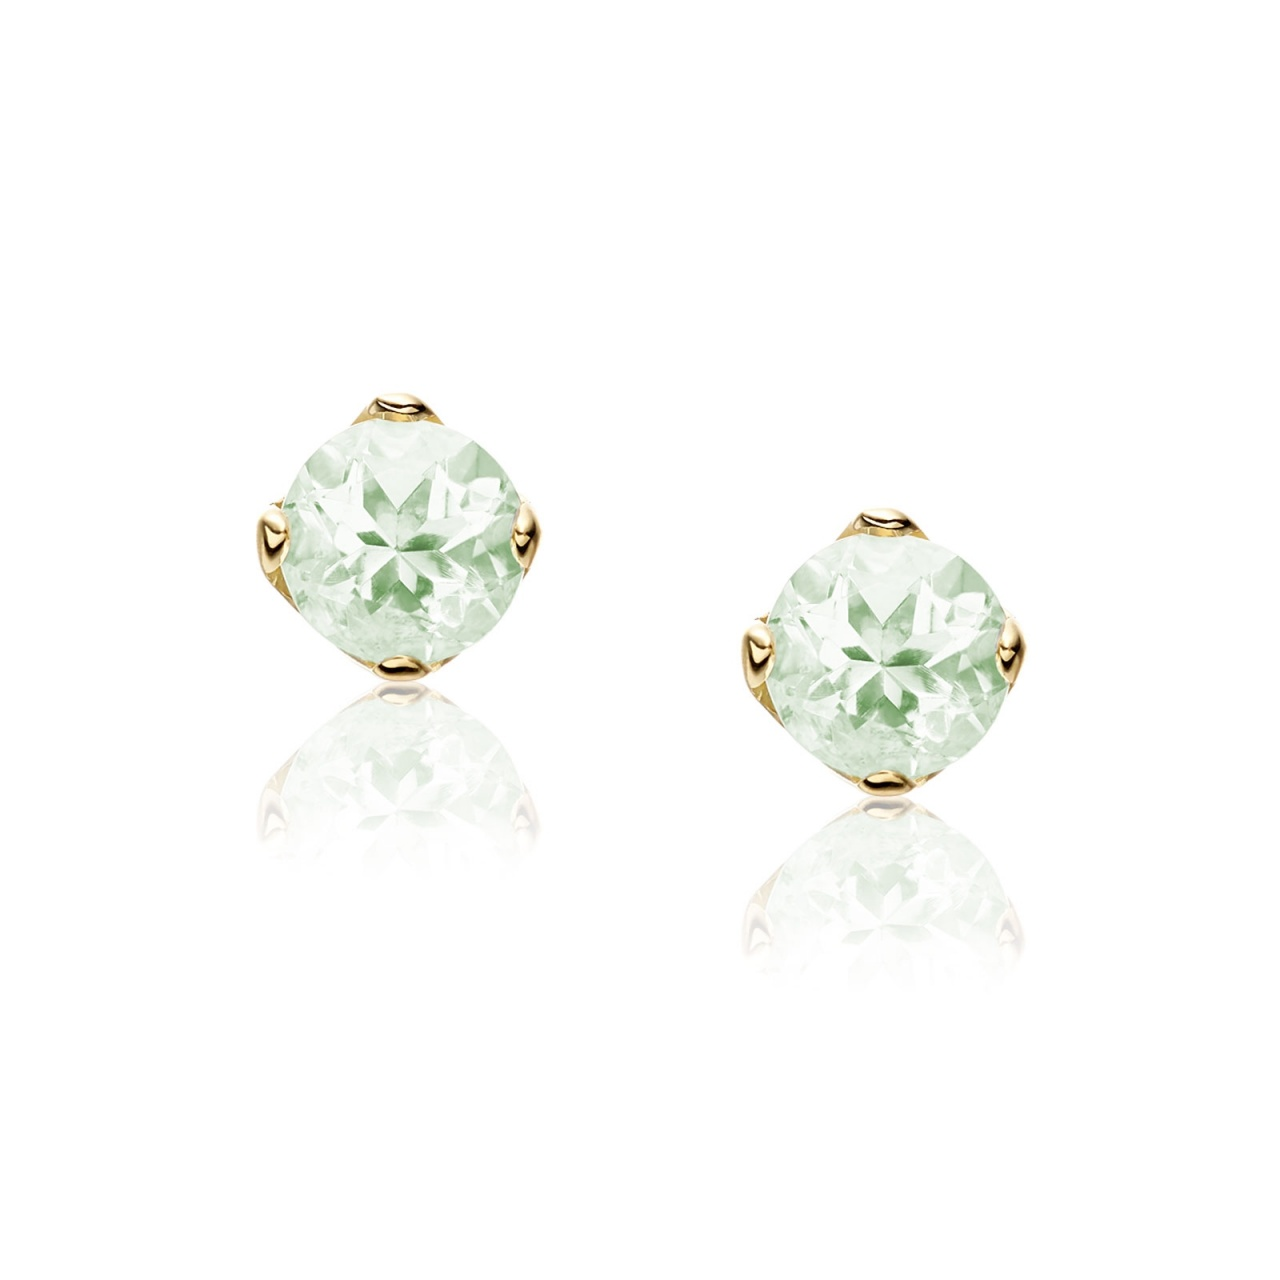 Lief Green Beryl Earrings in Yellow Gold with Tahitian Pearls-TEGRGB0484-1